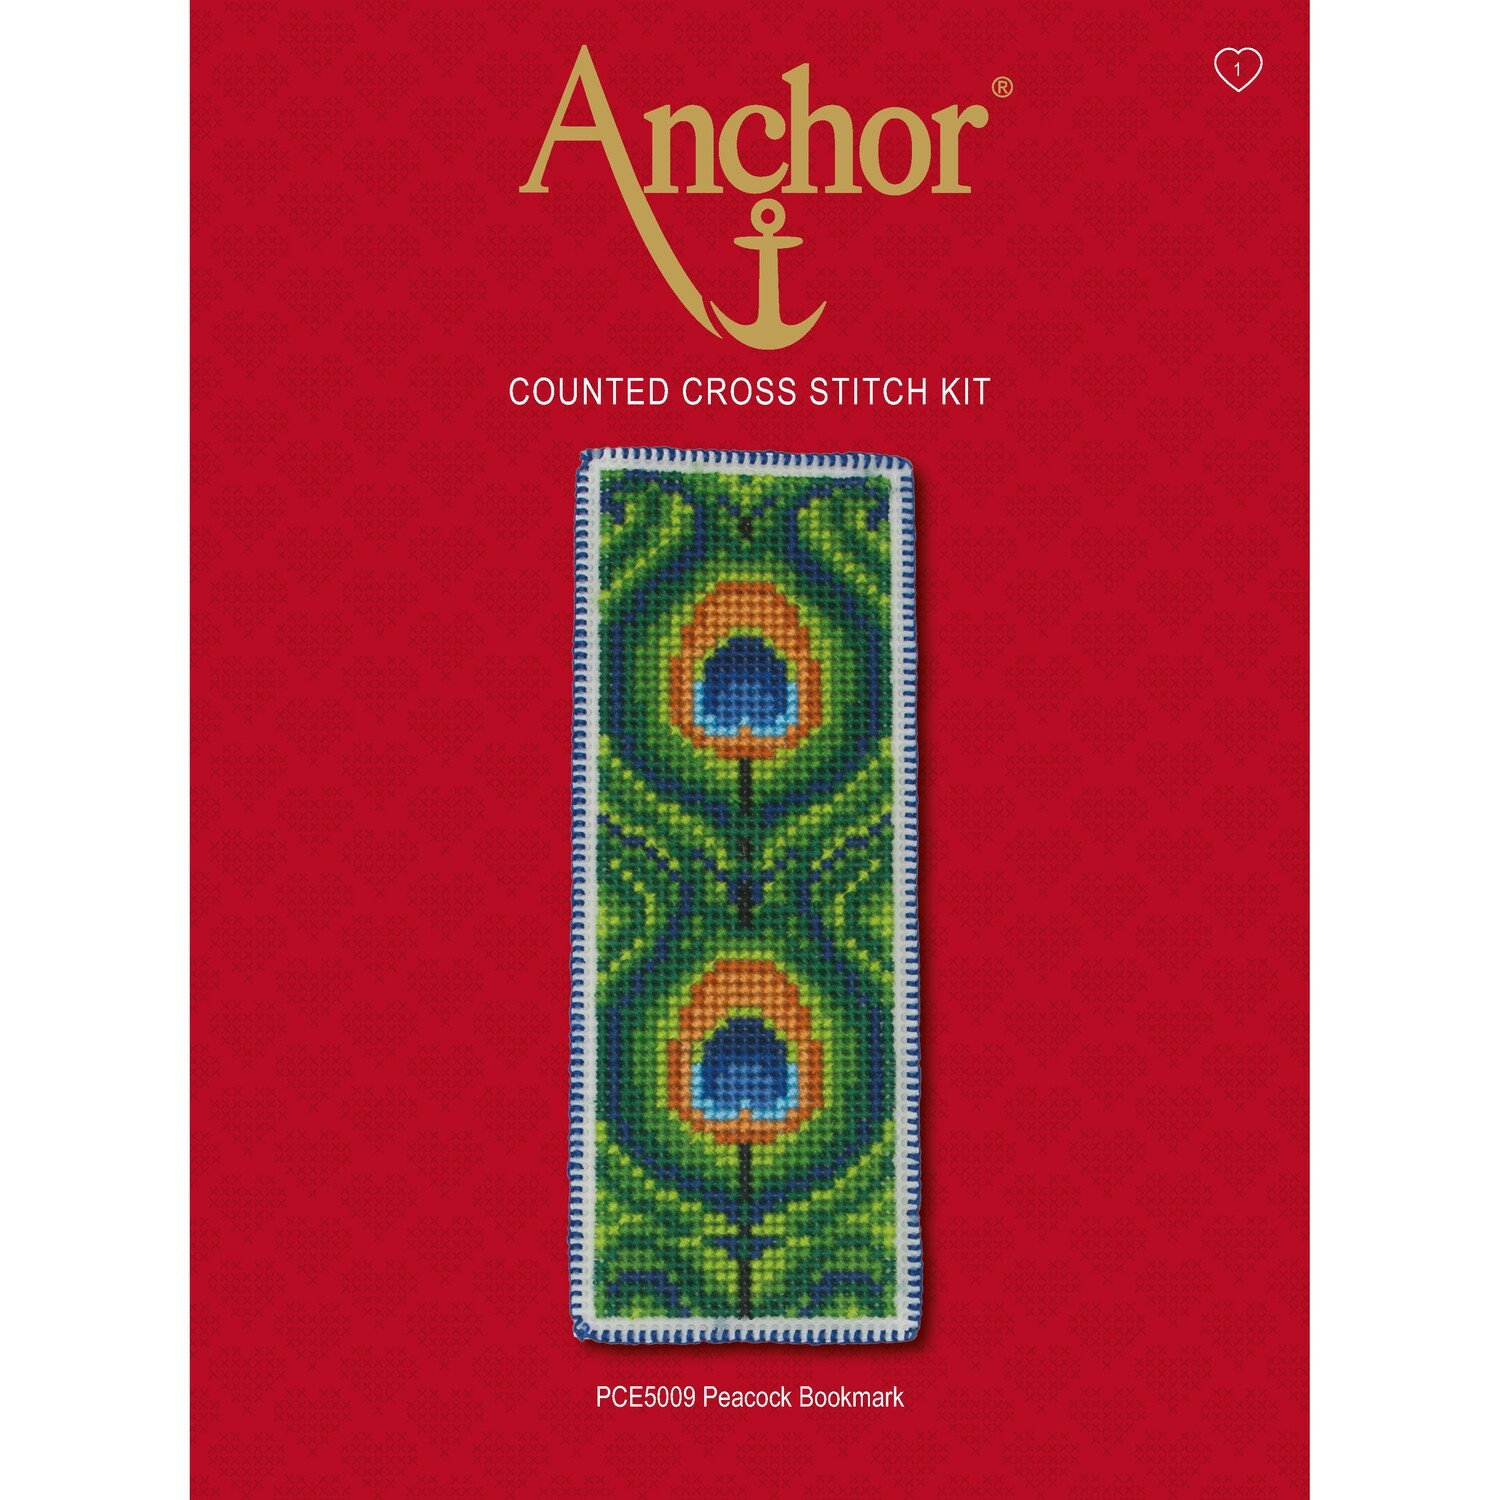 Anchor Essentials Cross Stitch Kit - Peacock Bookmark